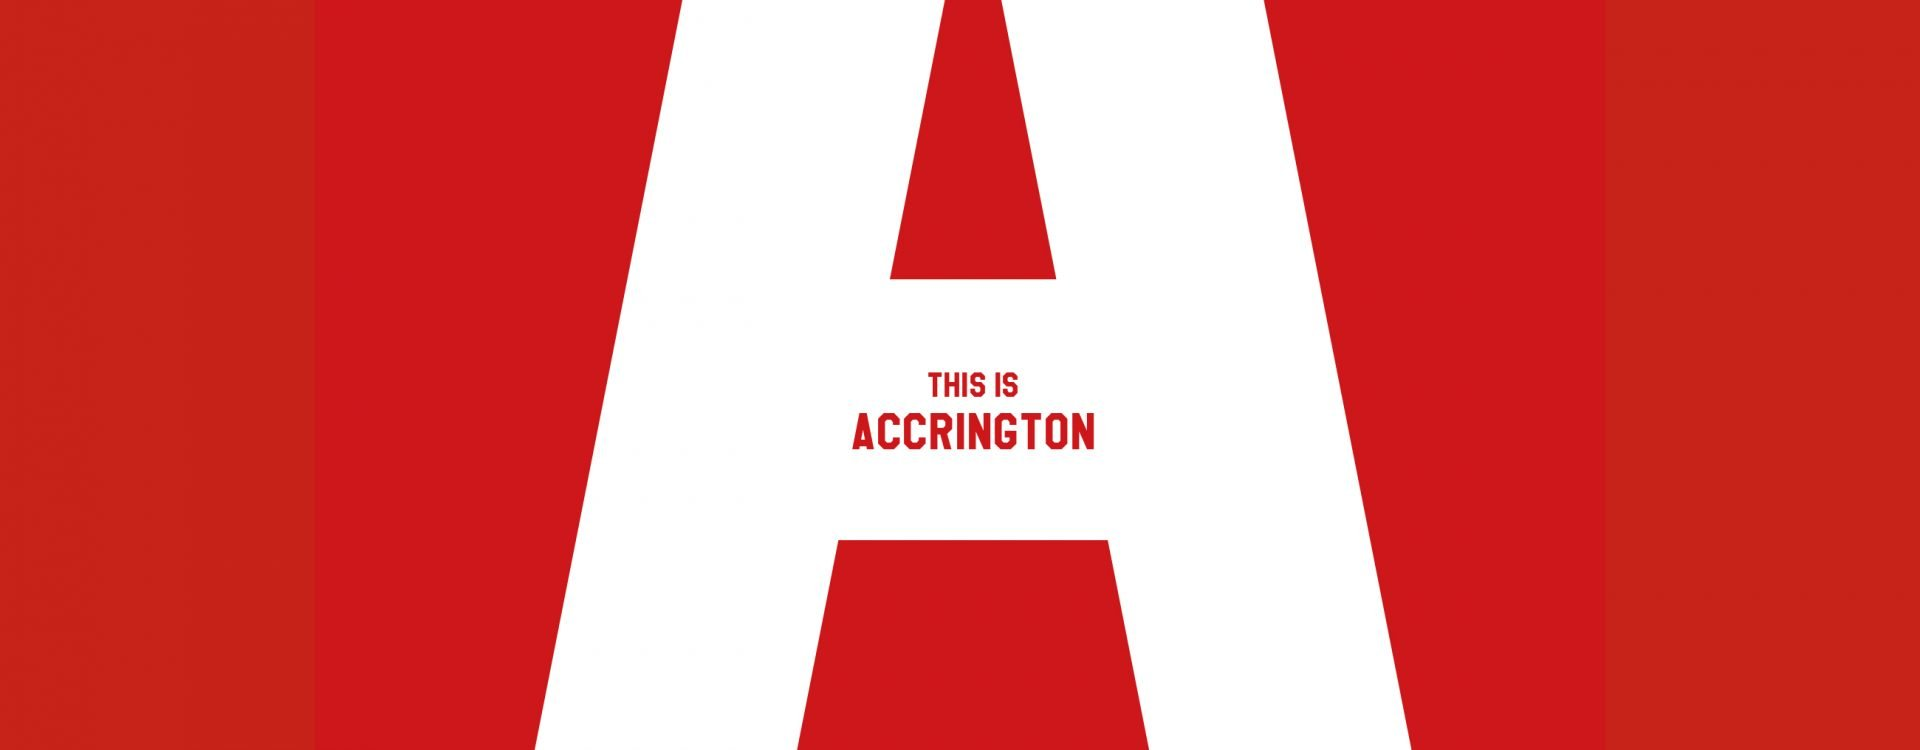 This Is Accrington